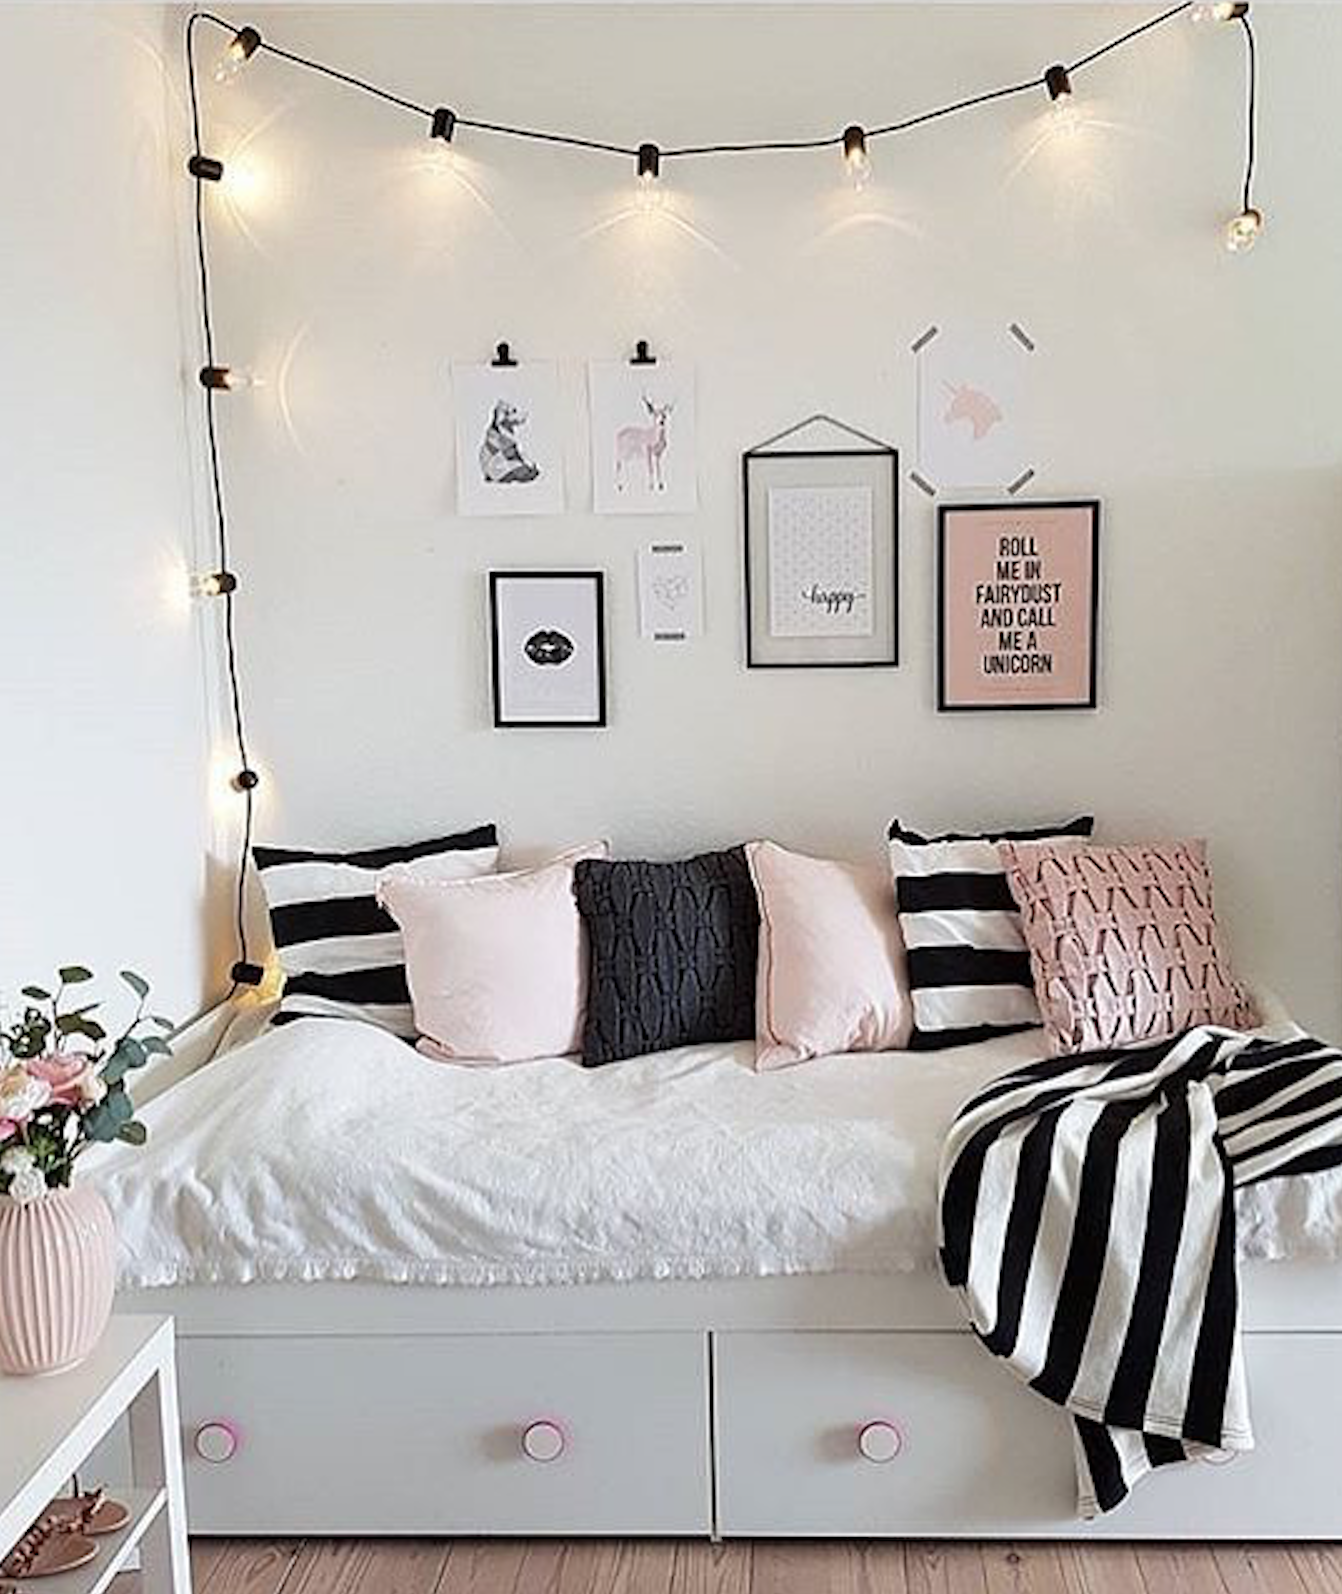 Bedroom Diy Decor According To Your Personality Small Bedroom Storage Cute Bedroom Ideas Bedroom Decor